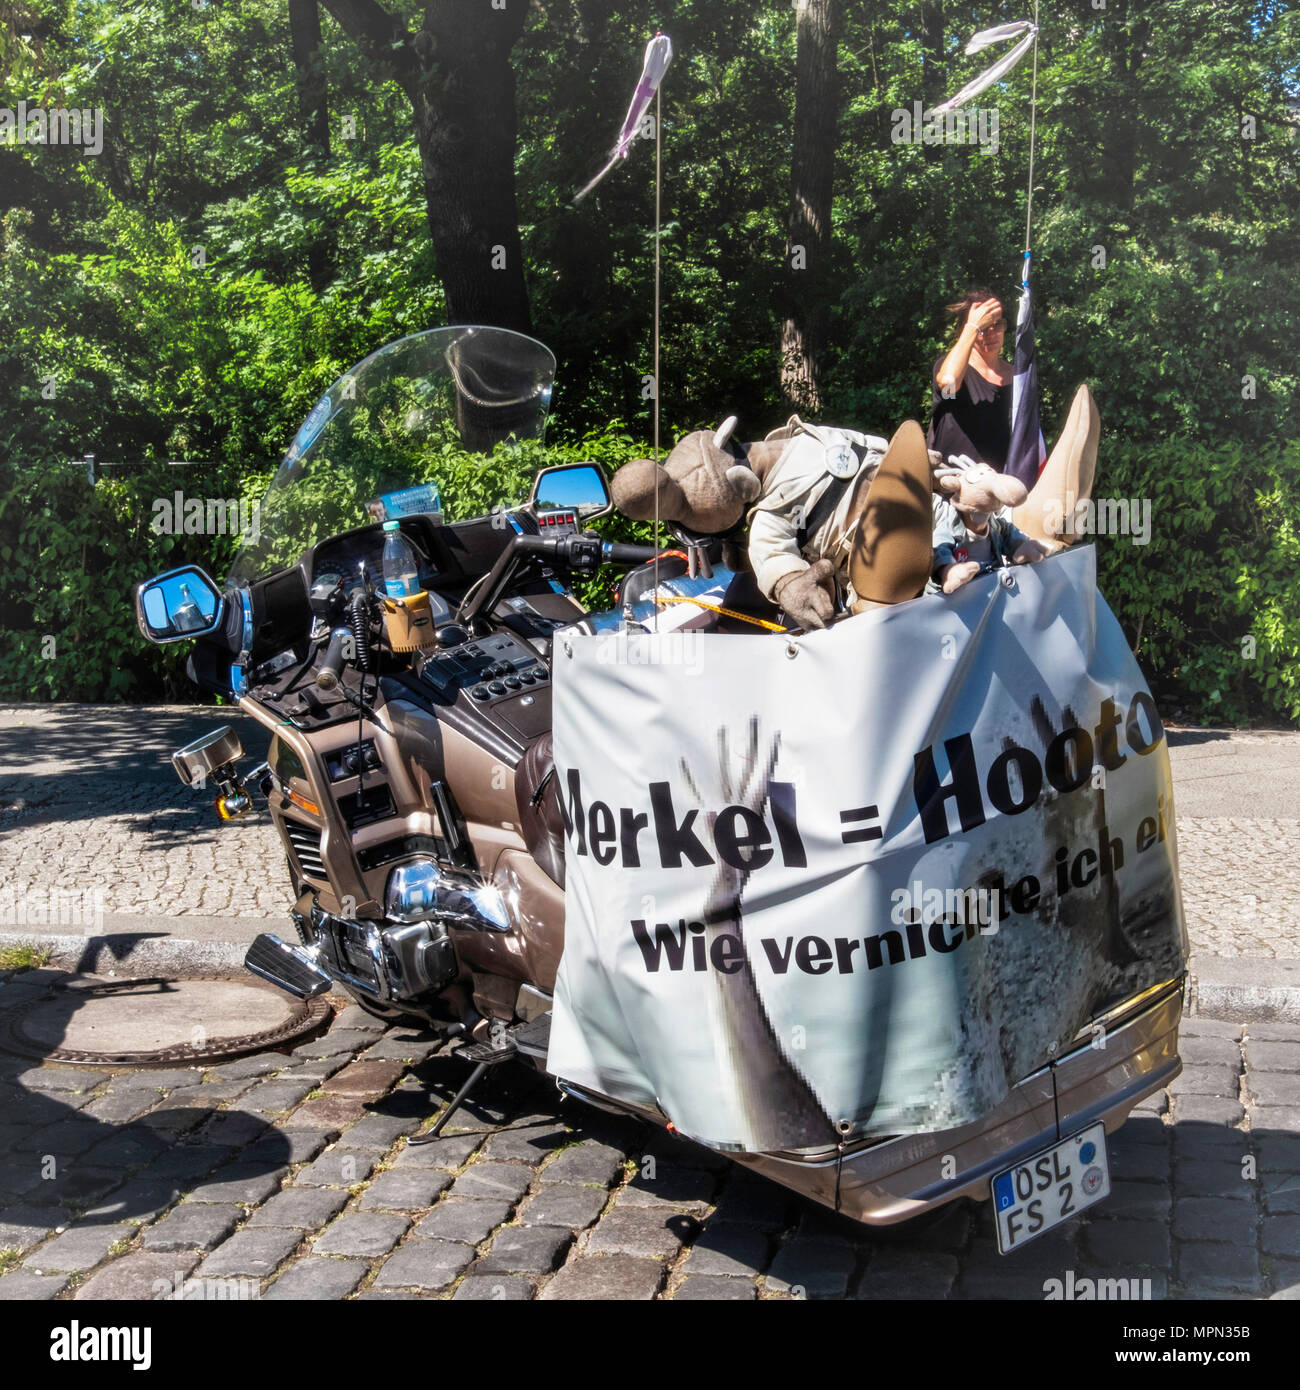 Berlin Mitte, Motor bike detail. Parked boke with protest poster and cuddly toy mascots at  Bikers Demo. - Stock Image